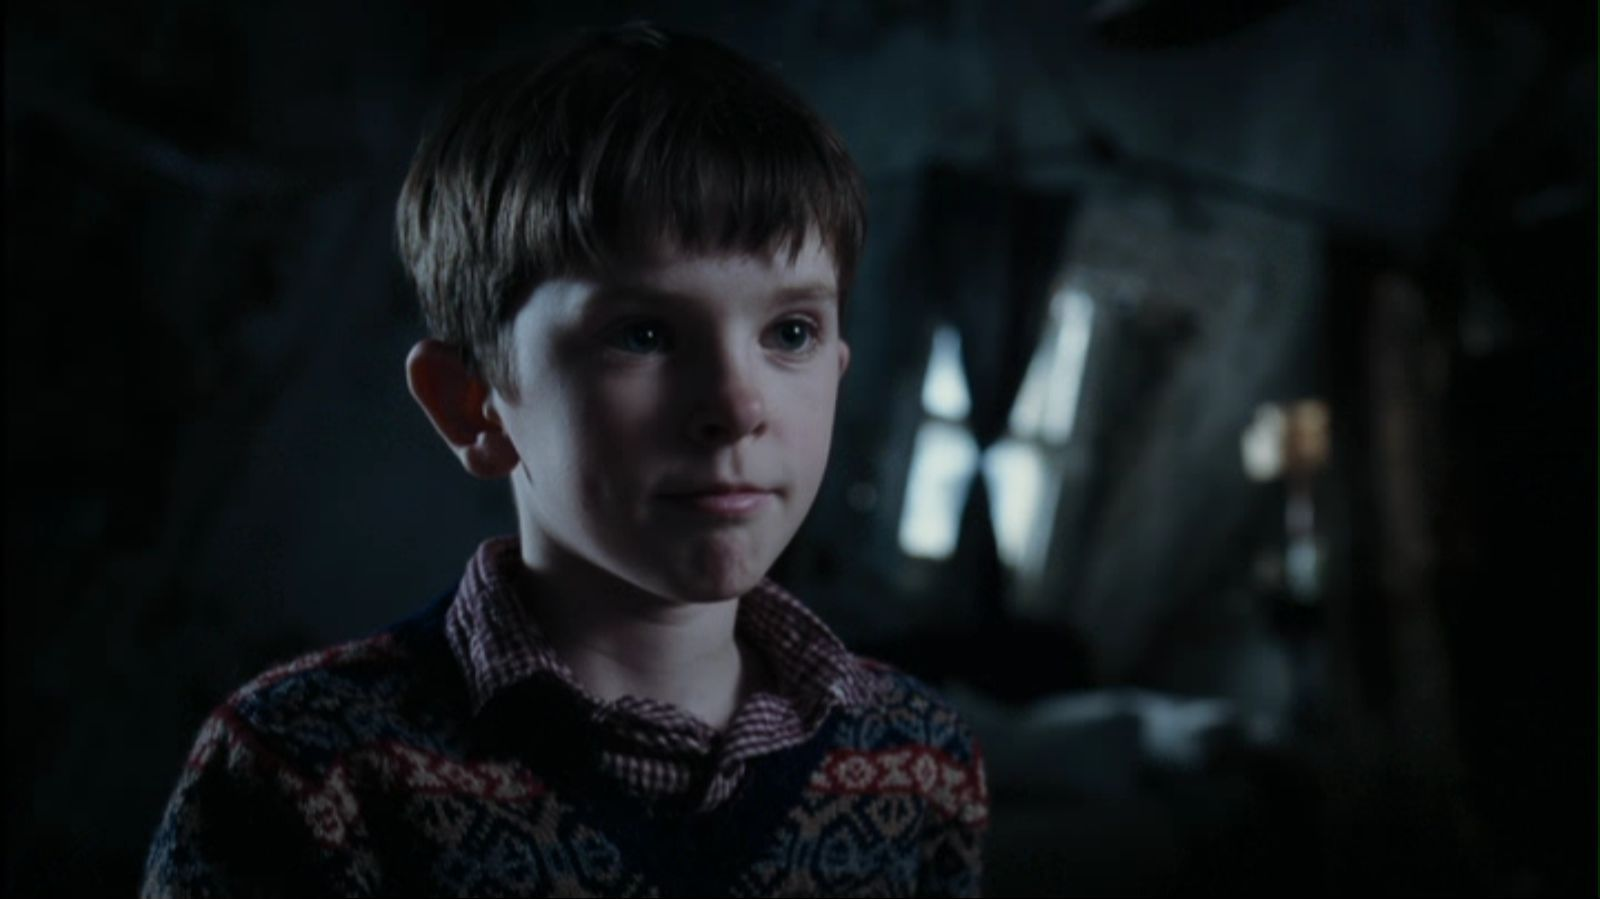 Boy From Charlie And The Chocolate Factory